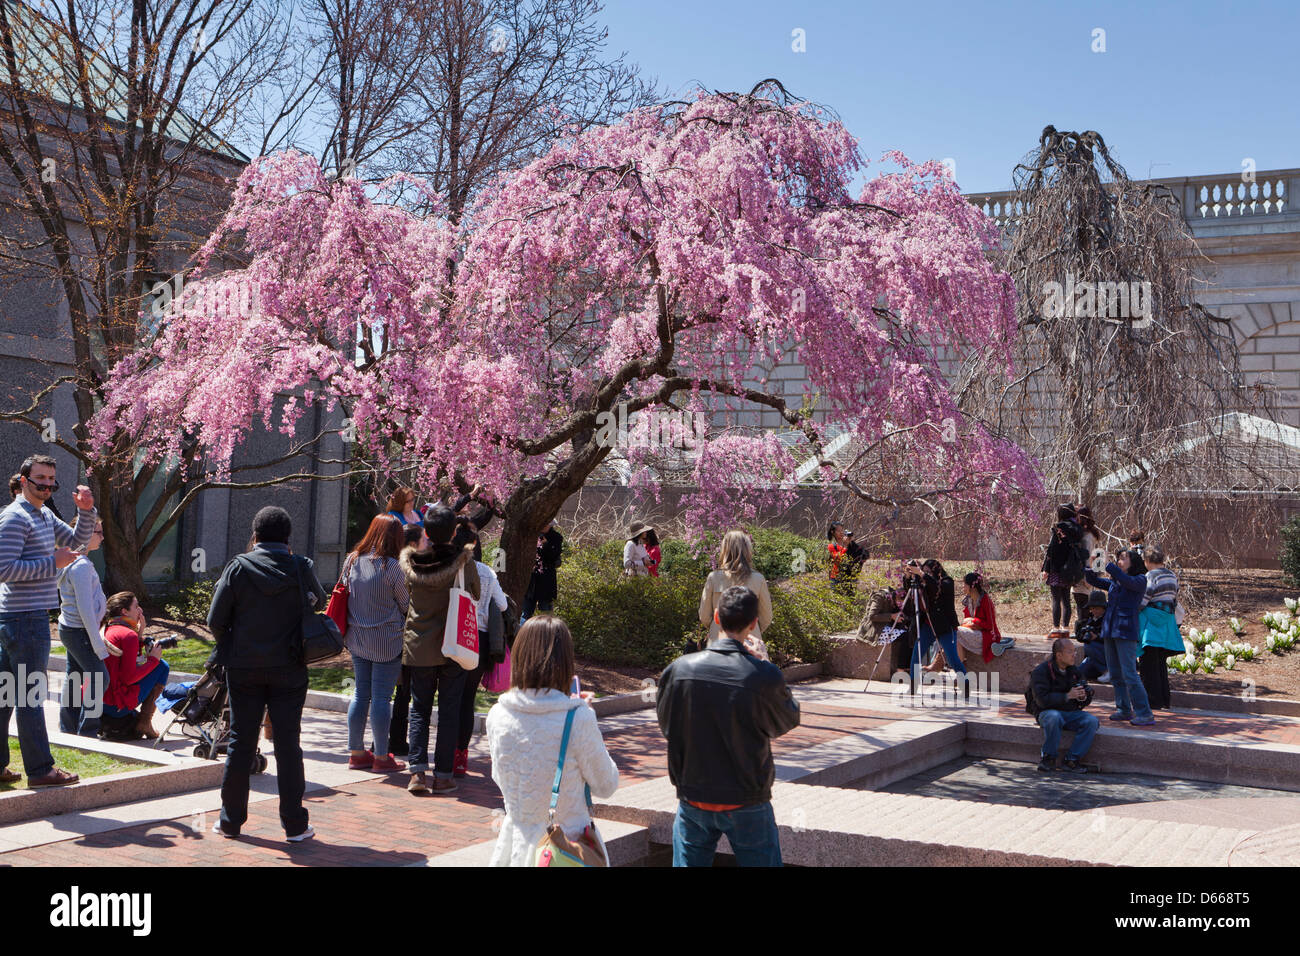 Crowd enjoying the Weeping Higan Cherry tree in full bloom - Stock Image